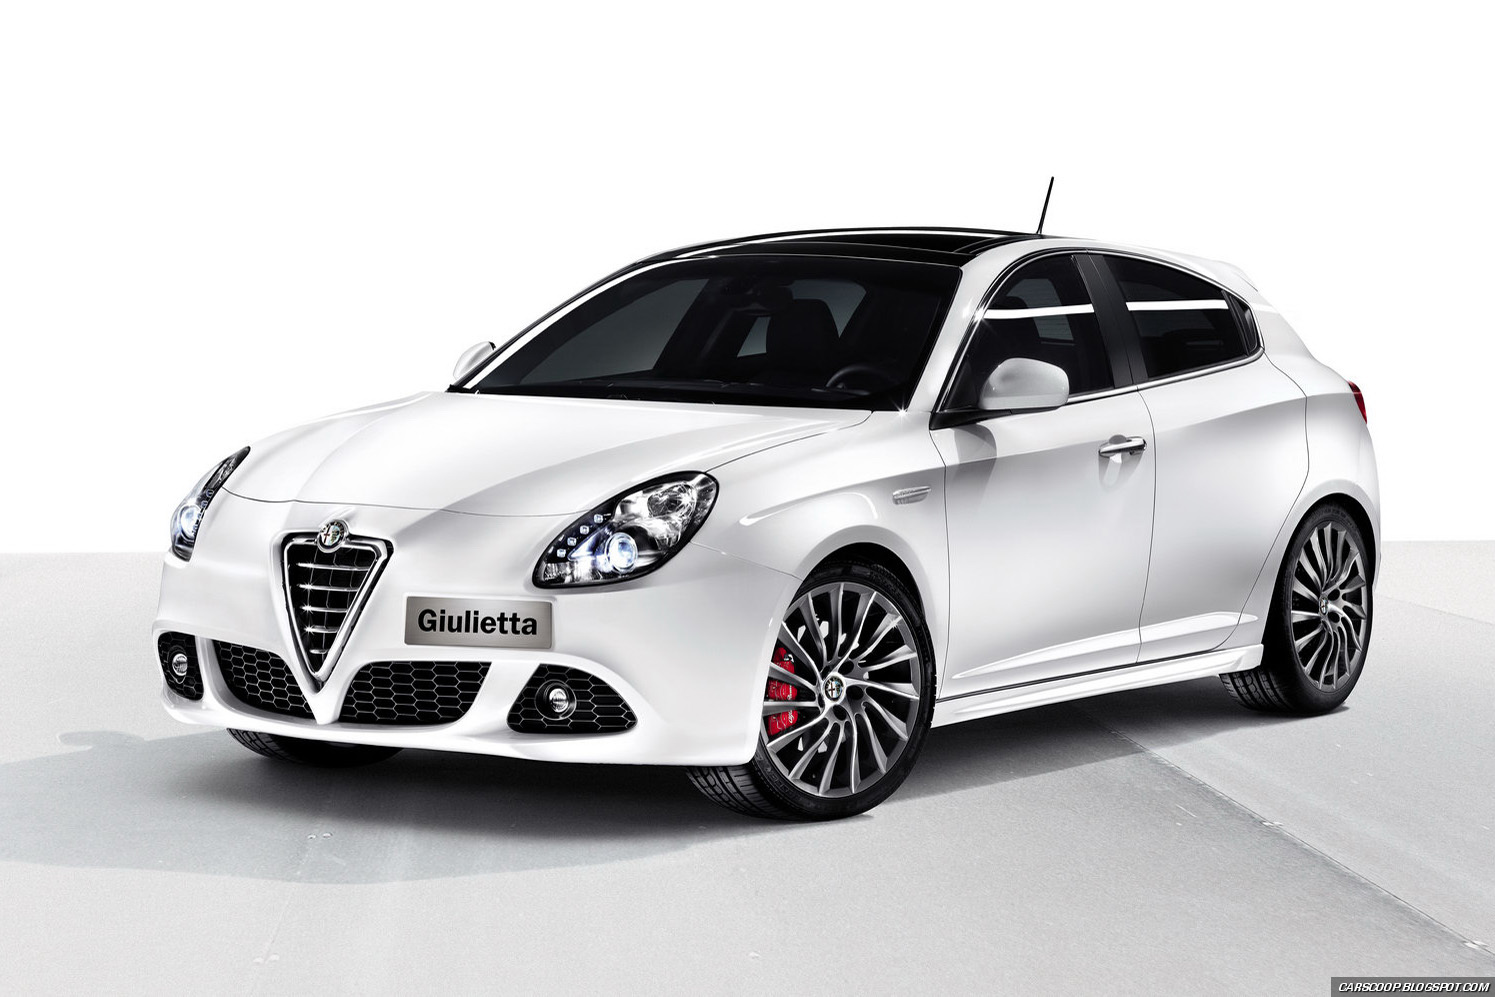 Alfa Romeo Giulietta Modifications You Cars On The Occasion Of Market Launch New That Is Set To Go Sale In All Major Markets From Beginning May